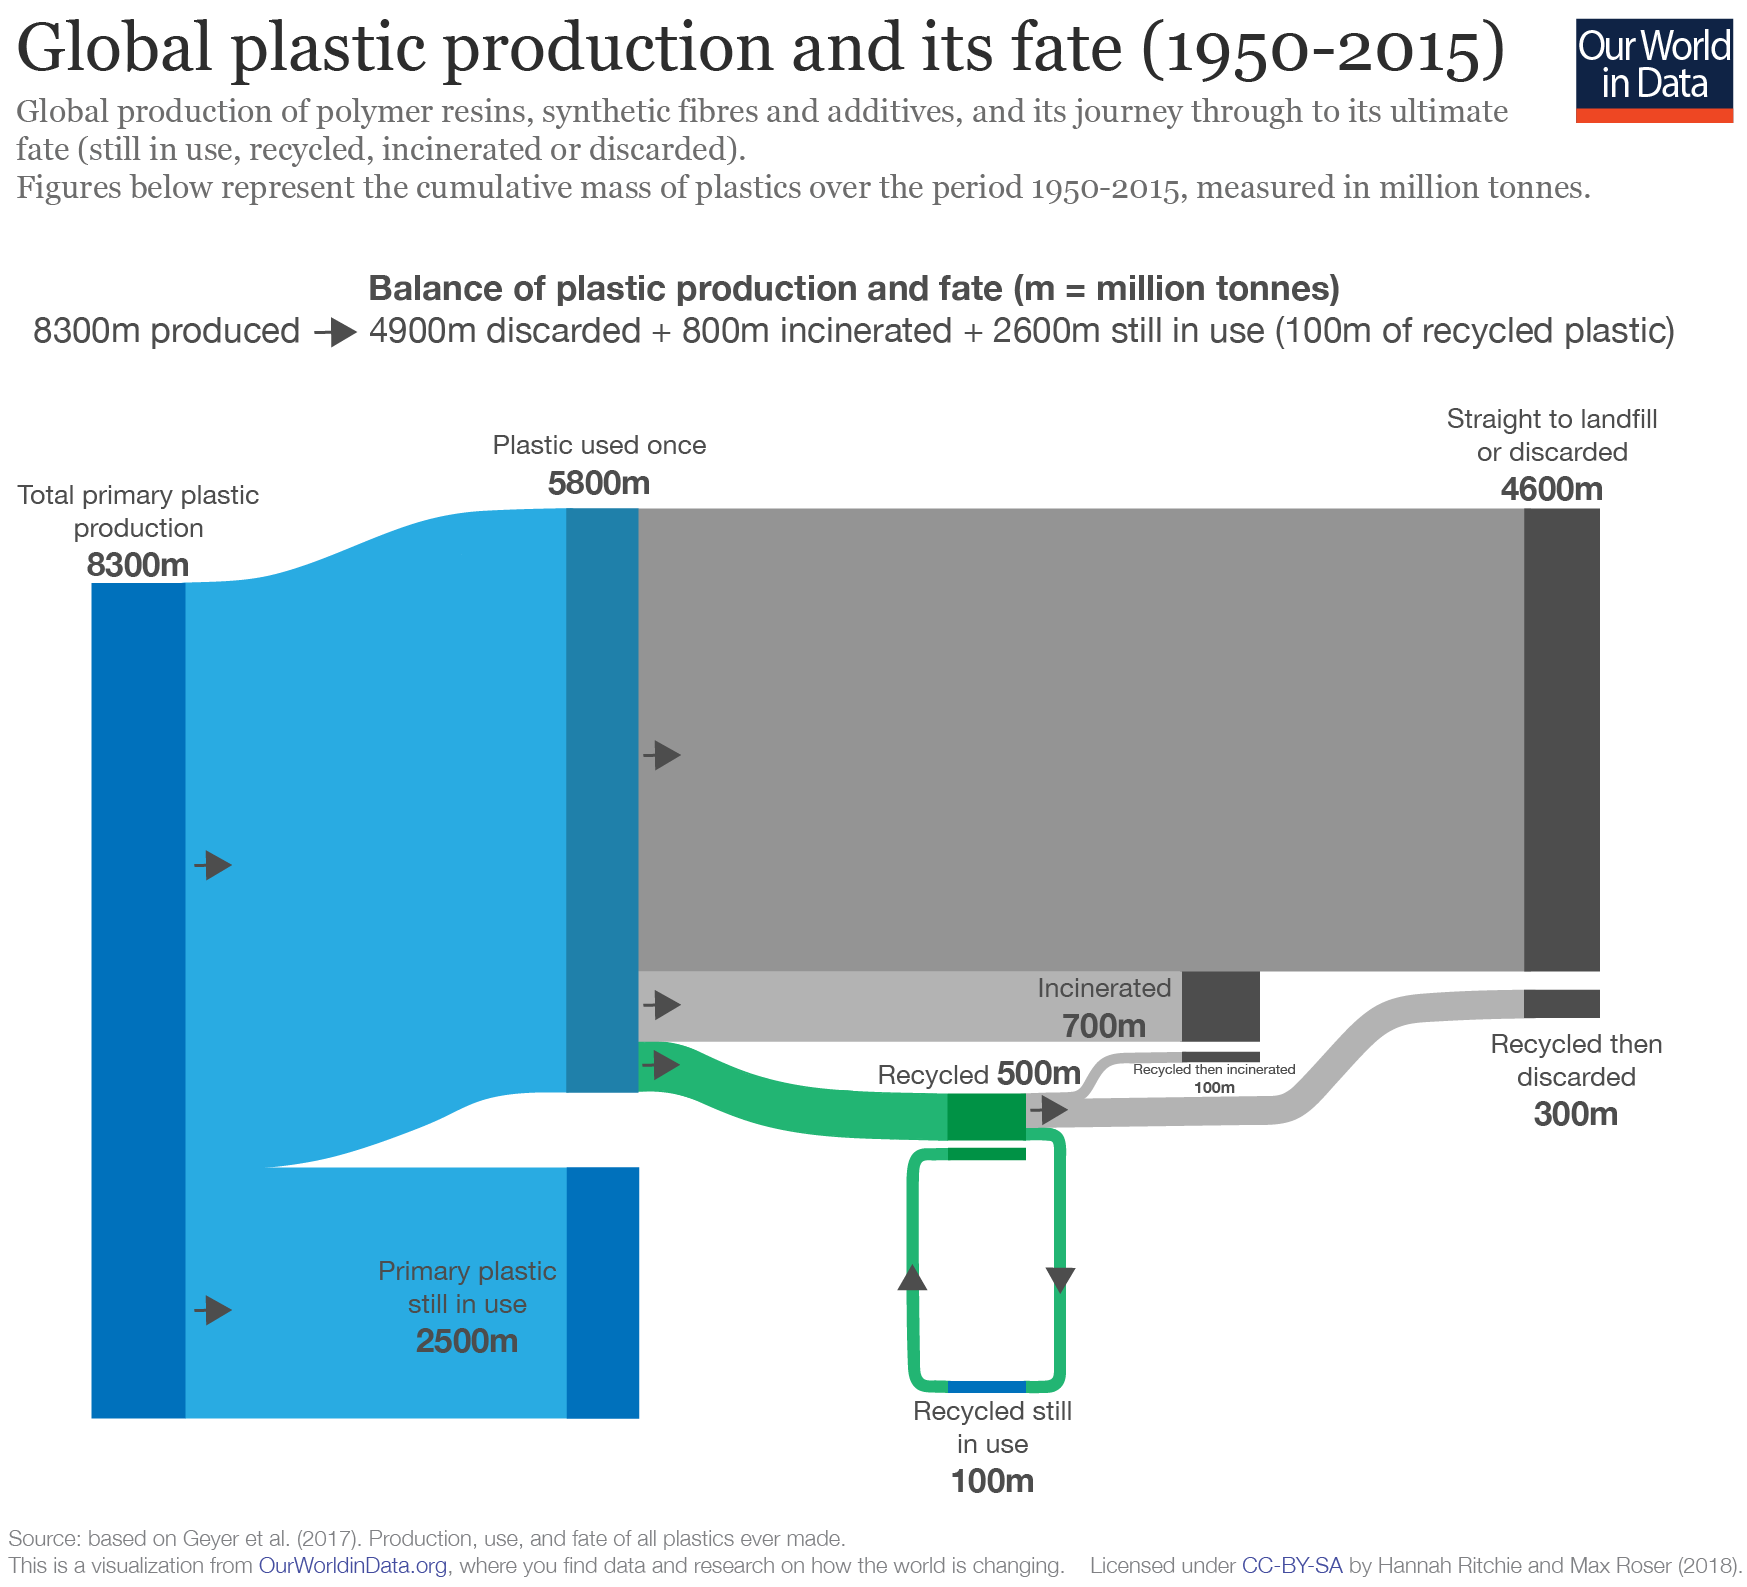 Global plastic production and its fate (1950-2015)